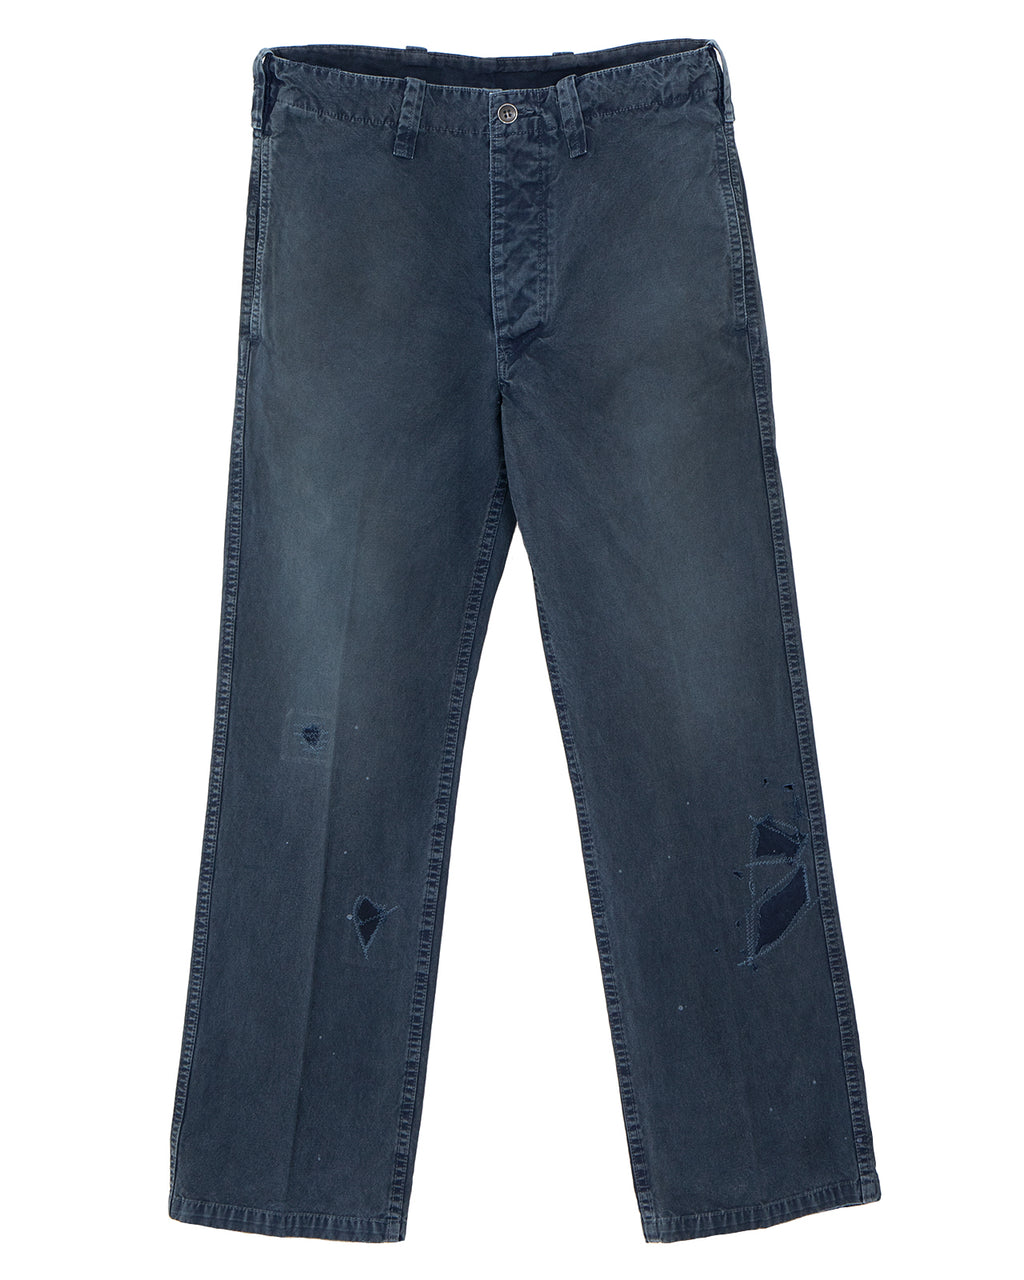 Visvim Gifford Pants Damaged, Indigo